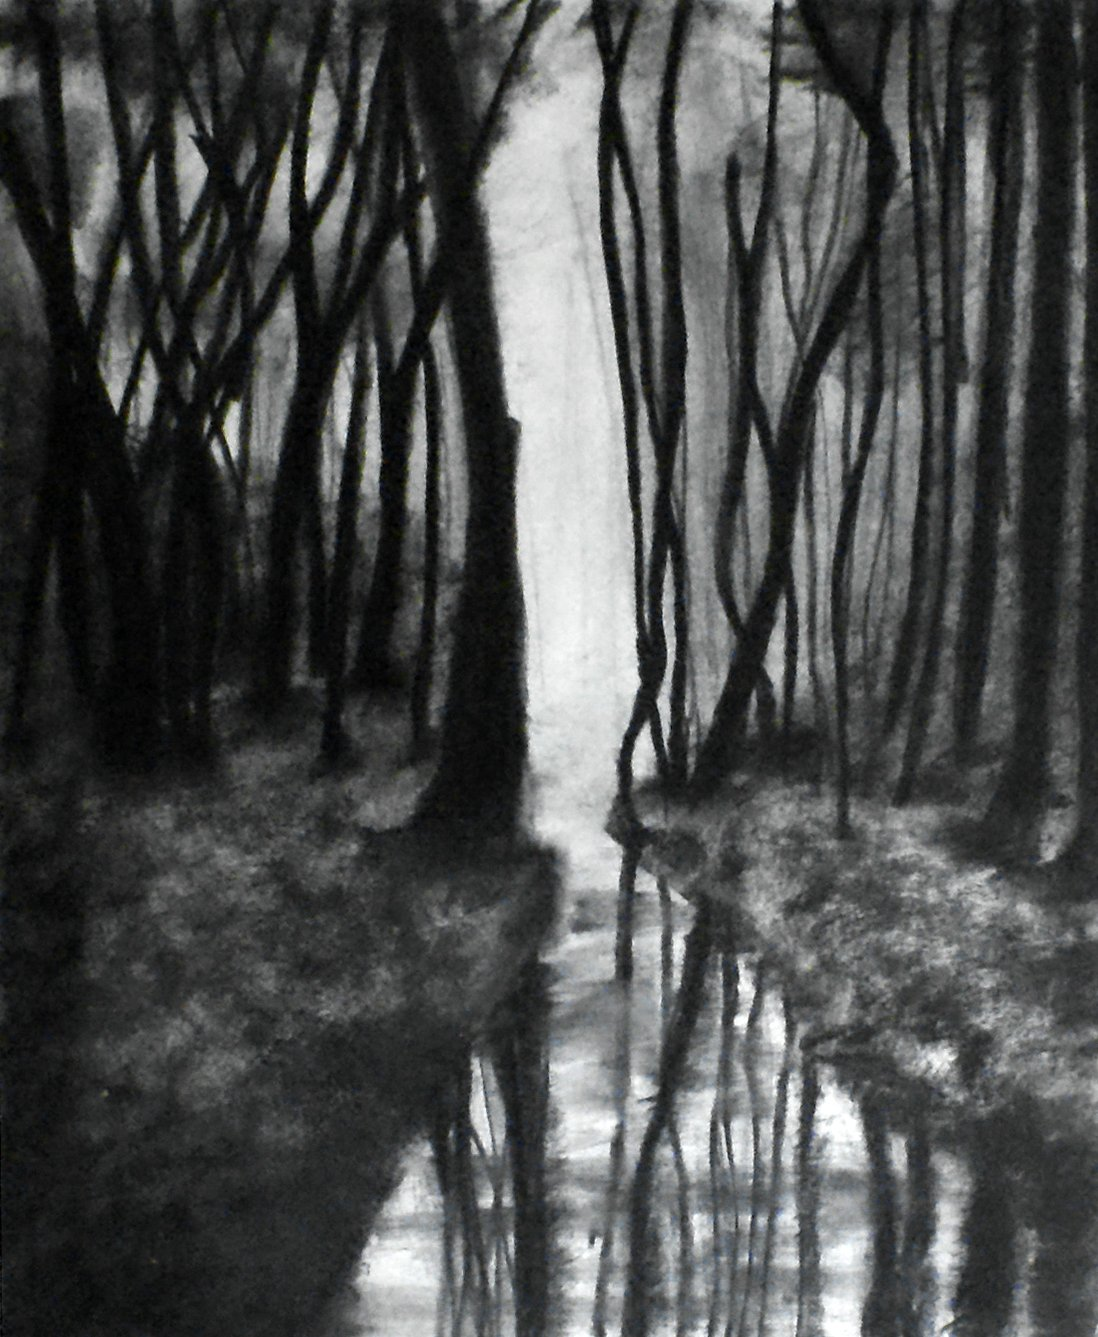 Amazon com 1 11x14 through the woods charcoal drawing